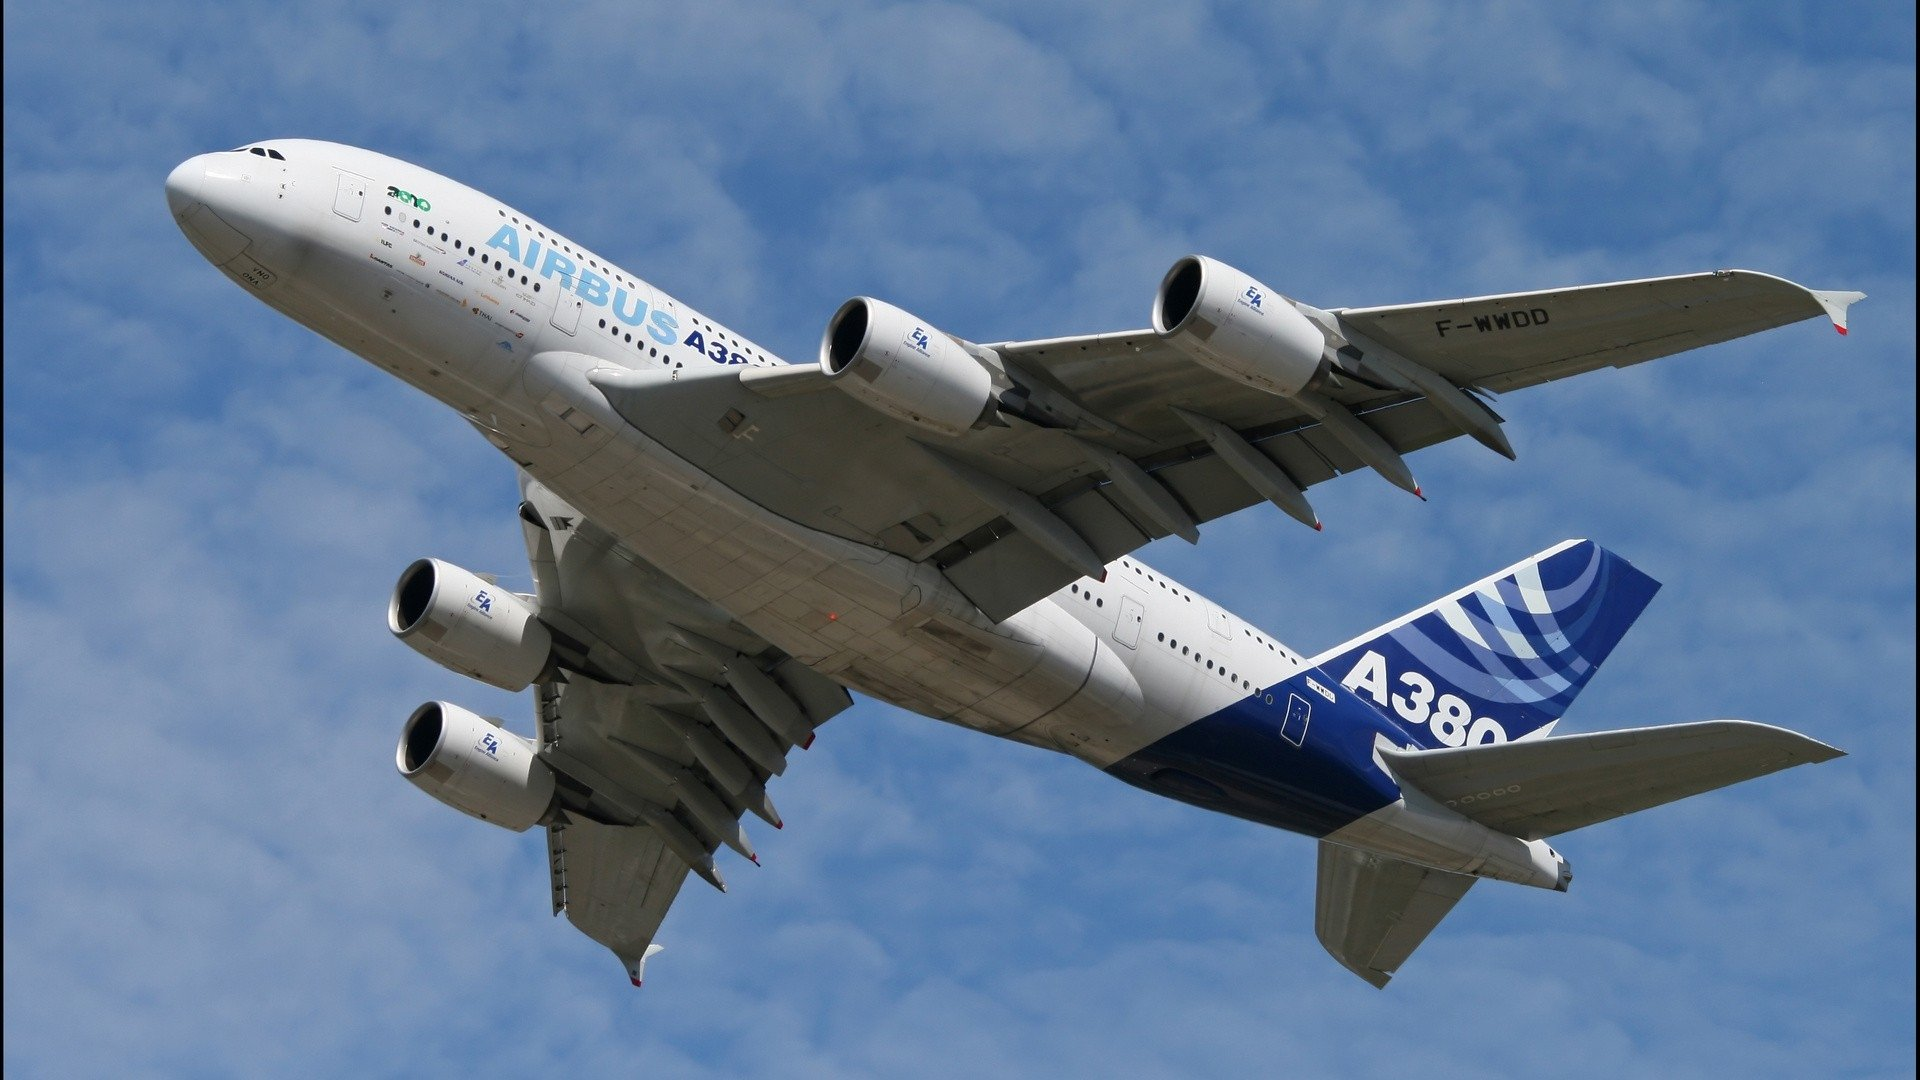 Airbus Iphone Wallpaper Airbus A380 Full Hd Wallpaper And Background Image